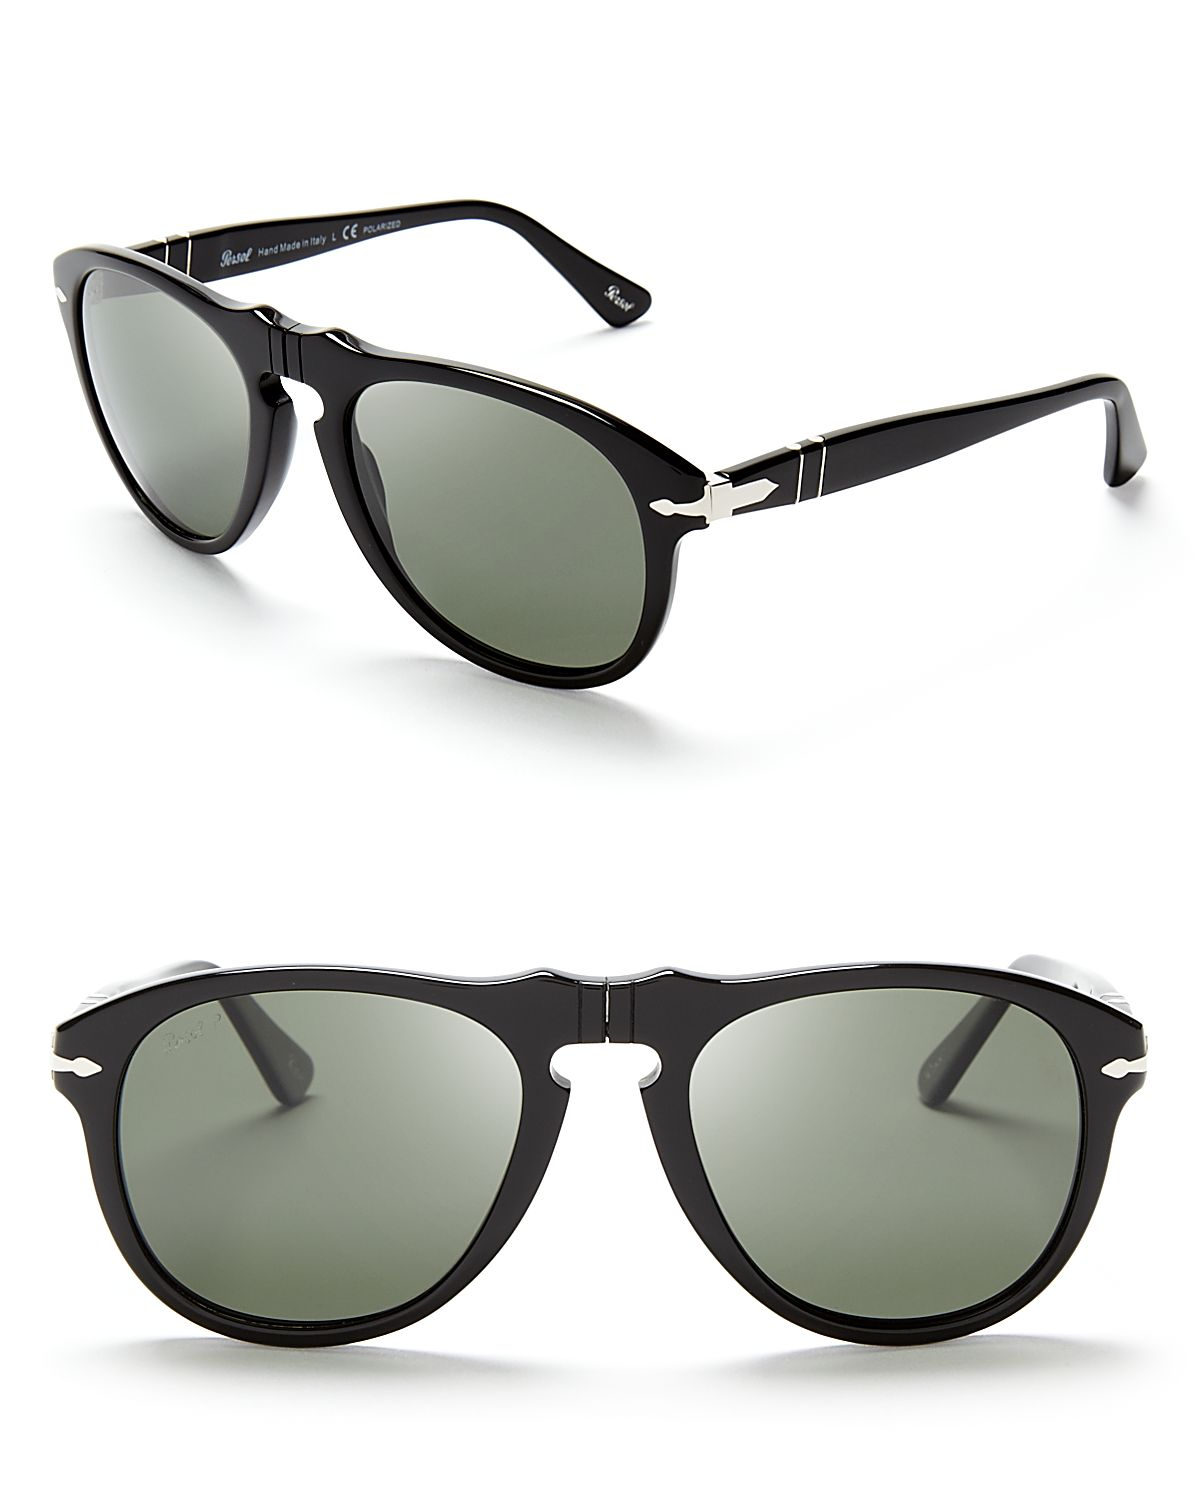 f7951ad8360 Lyst - Persol Suprema Polarized Retro Keyhole Sunglasses in Black ...